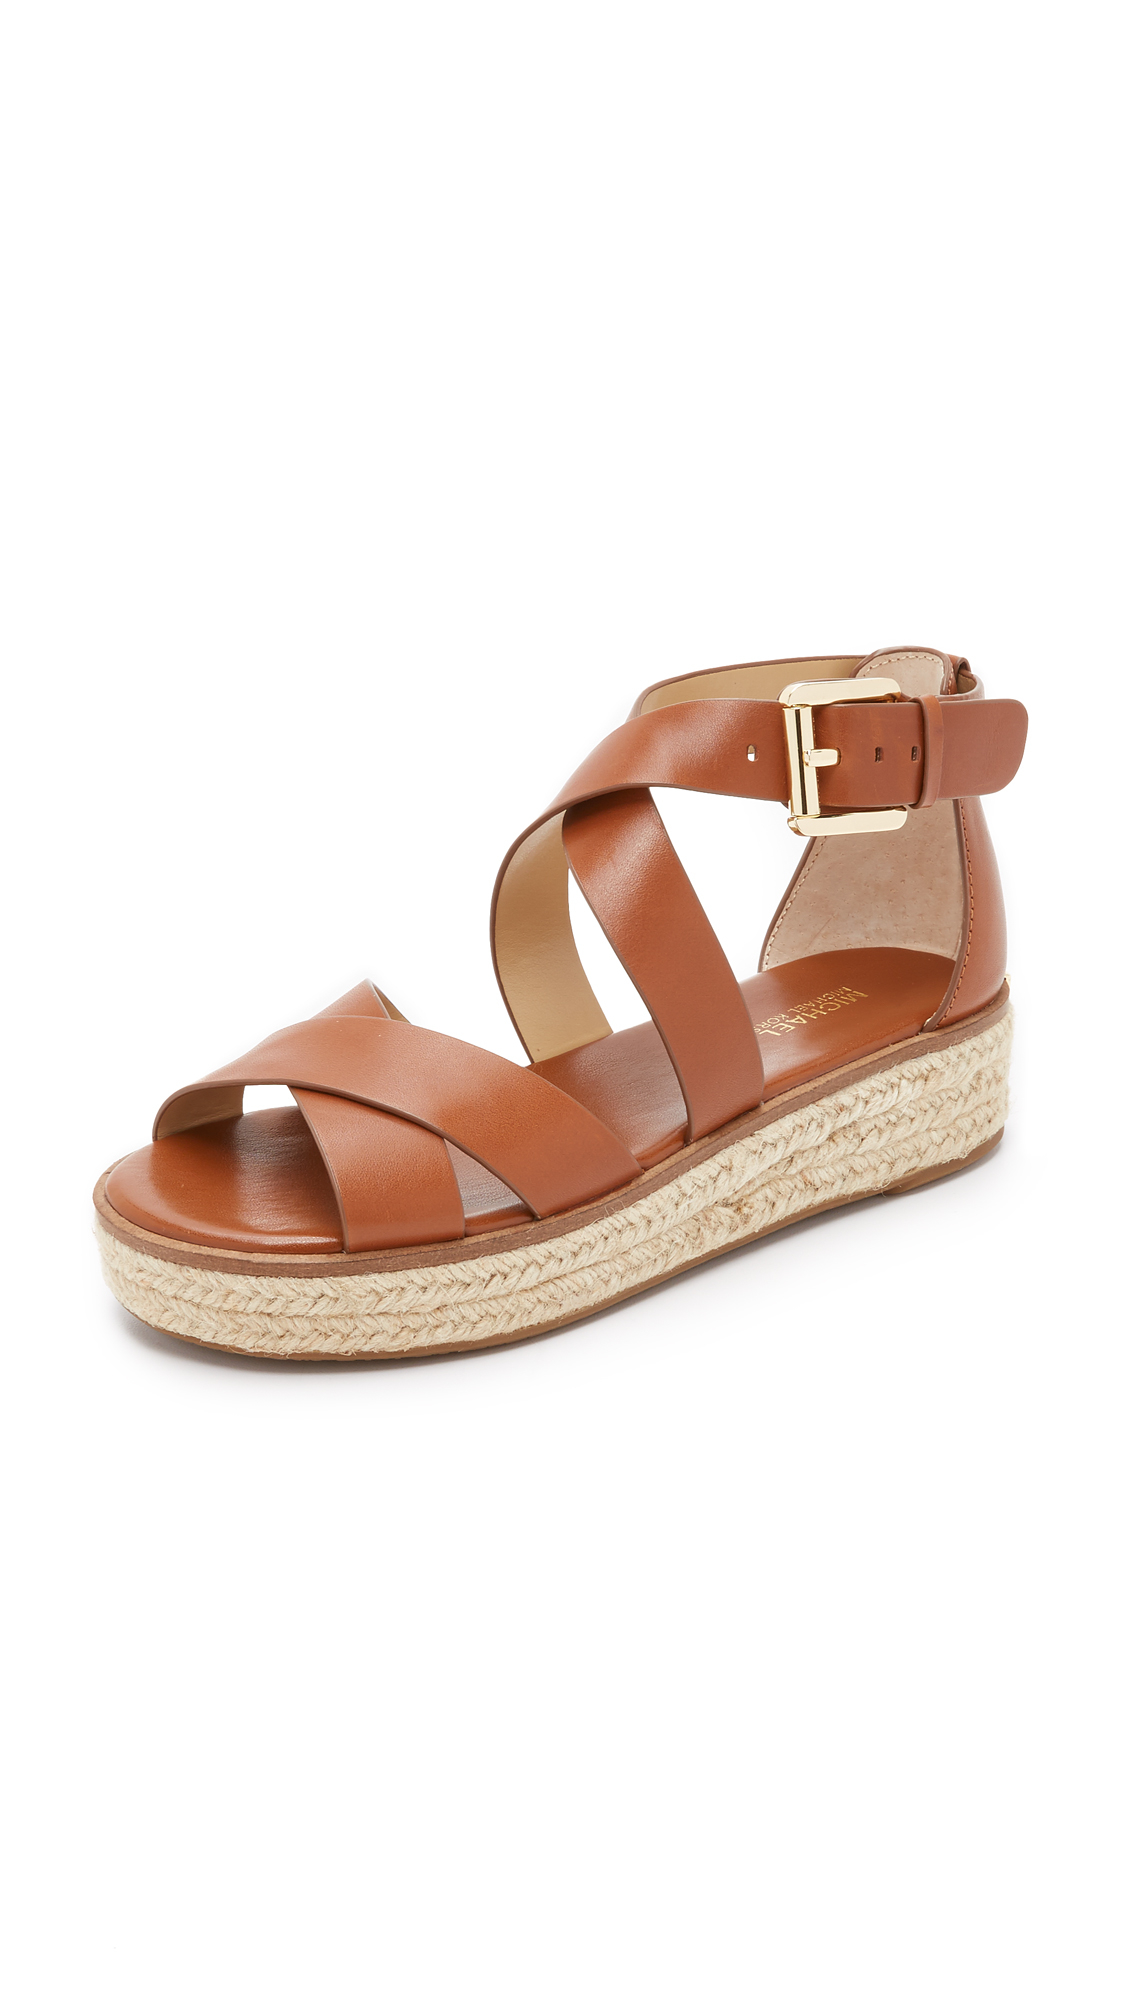 Michael michael kors Darby Sandals in Brown | Lyst